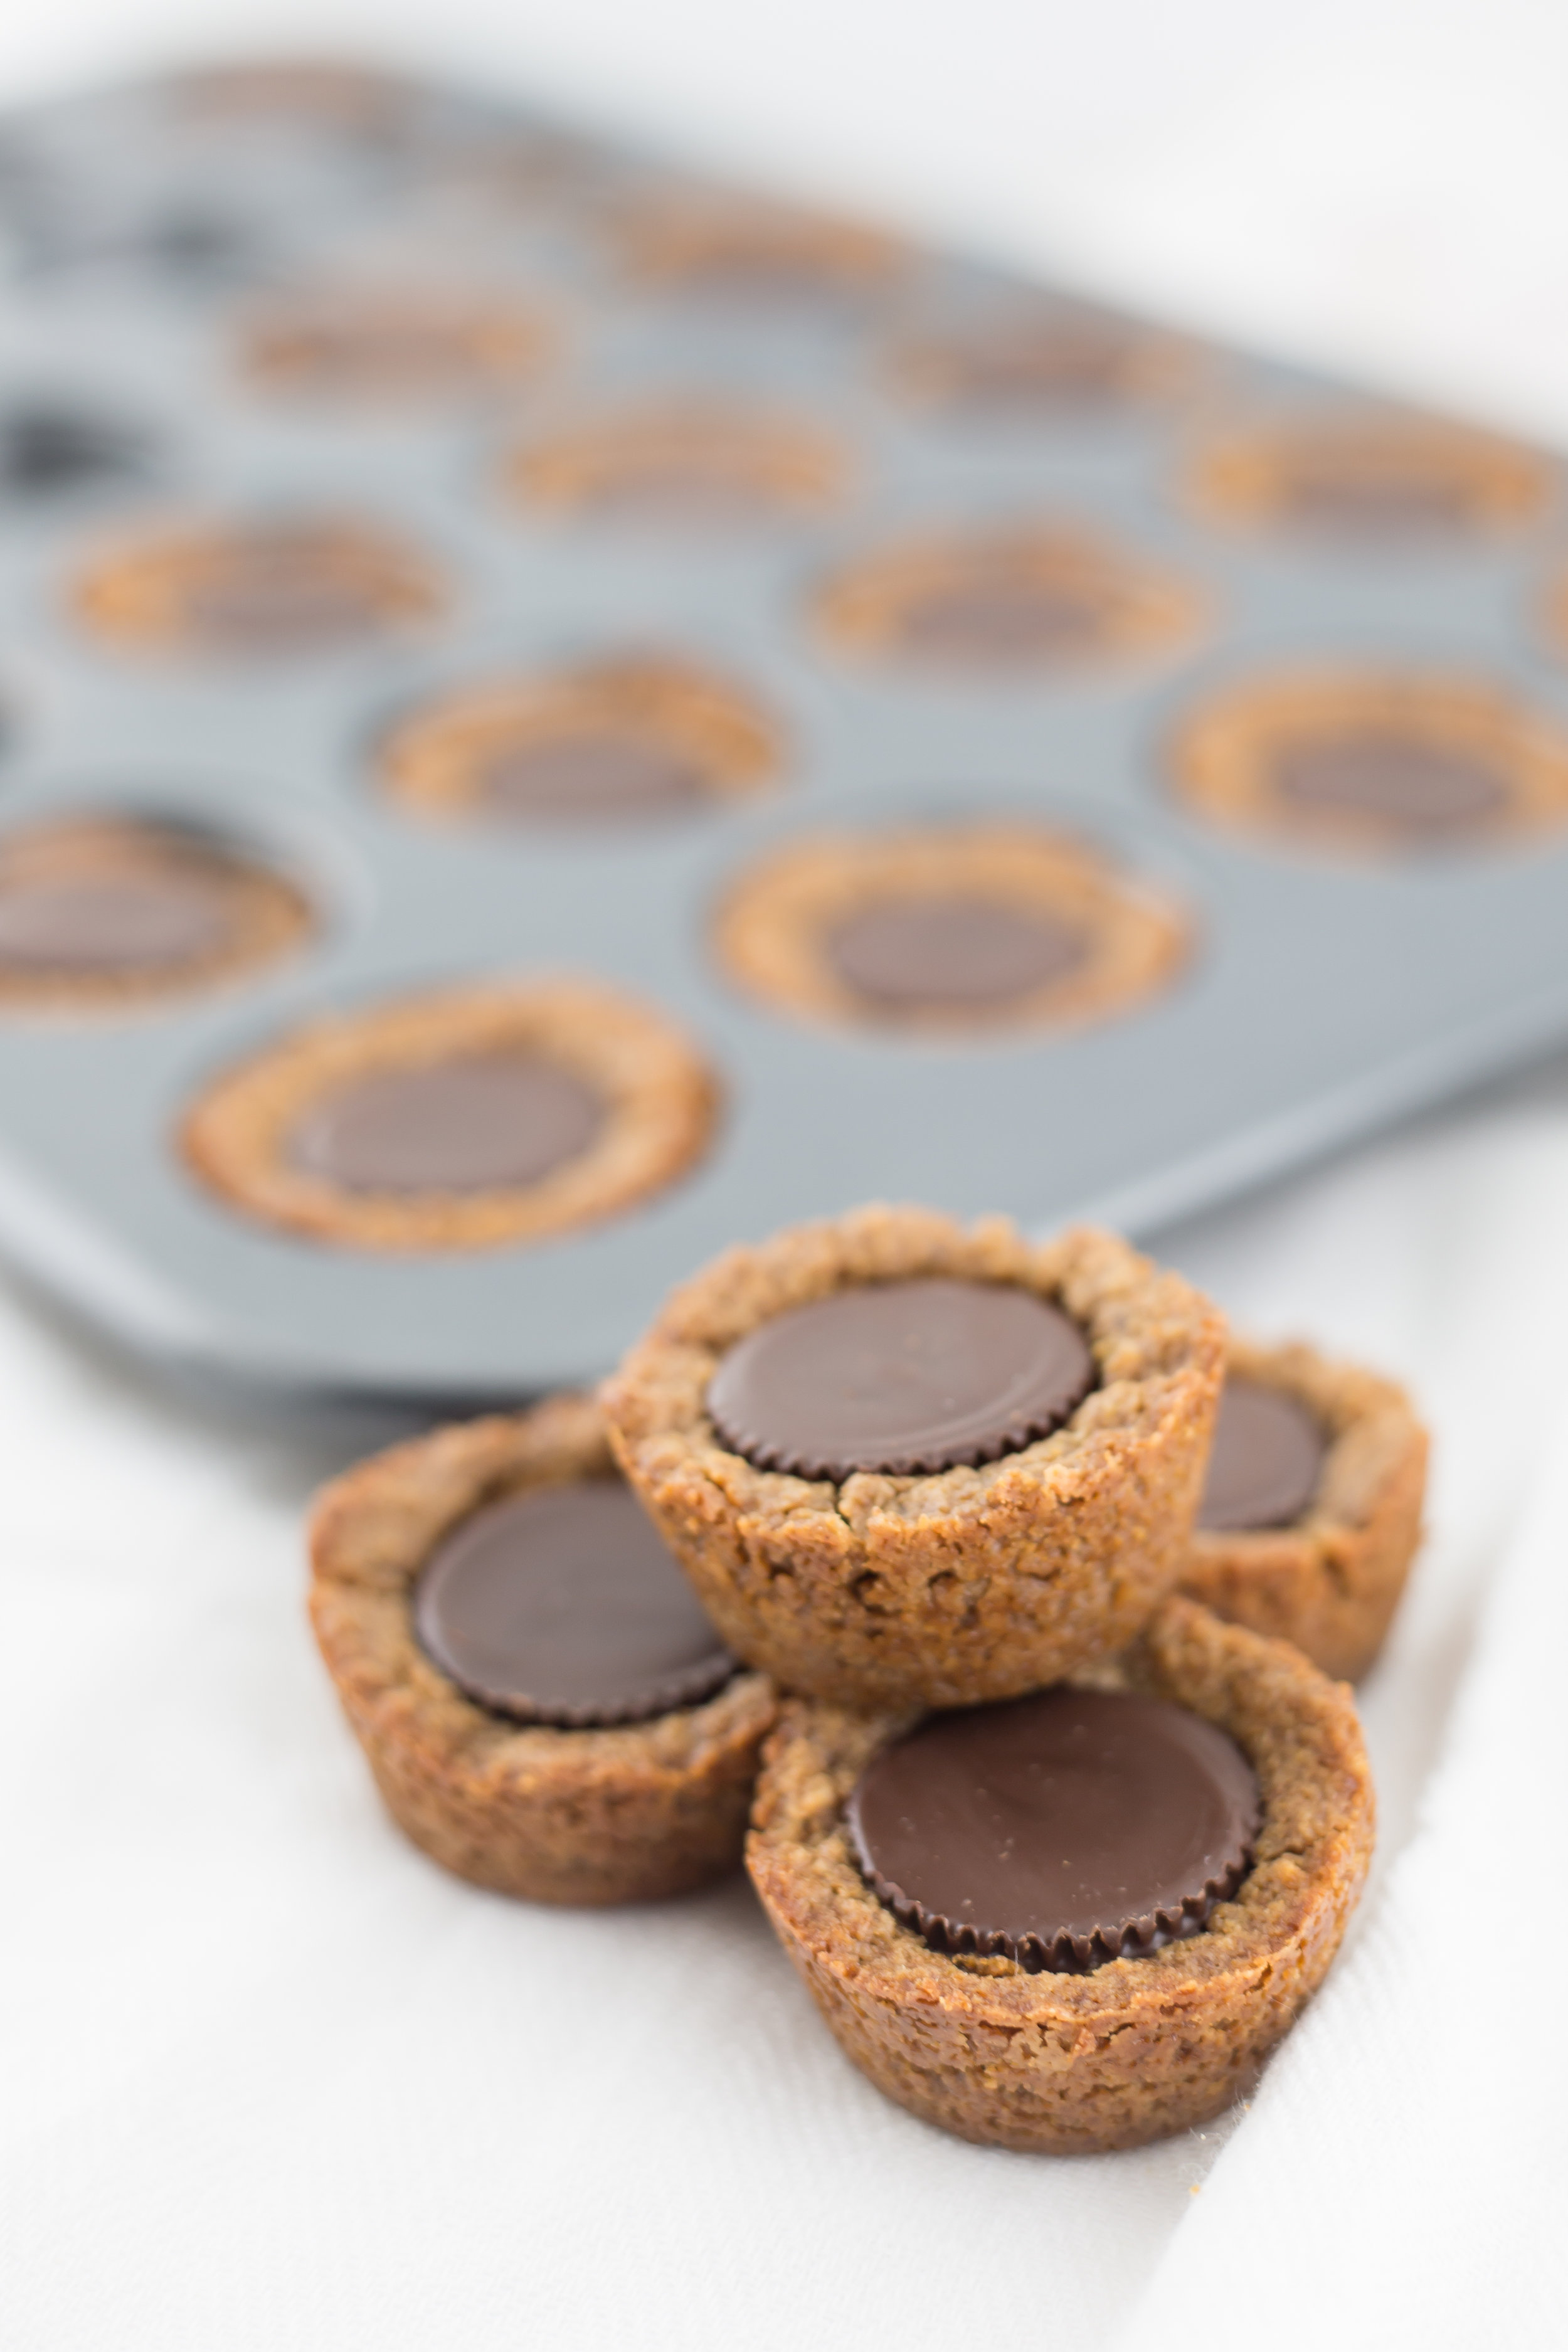 Holiday Cookies, Paleo Blog, Paleo Recipes, Real Food, Eat Real Food, Primal, Health, Healthy, Eat Clean, Clean Eating, Minnesota, Minneapolis, Define Fettle, Health Coach, Wellness Coach